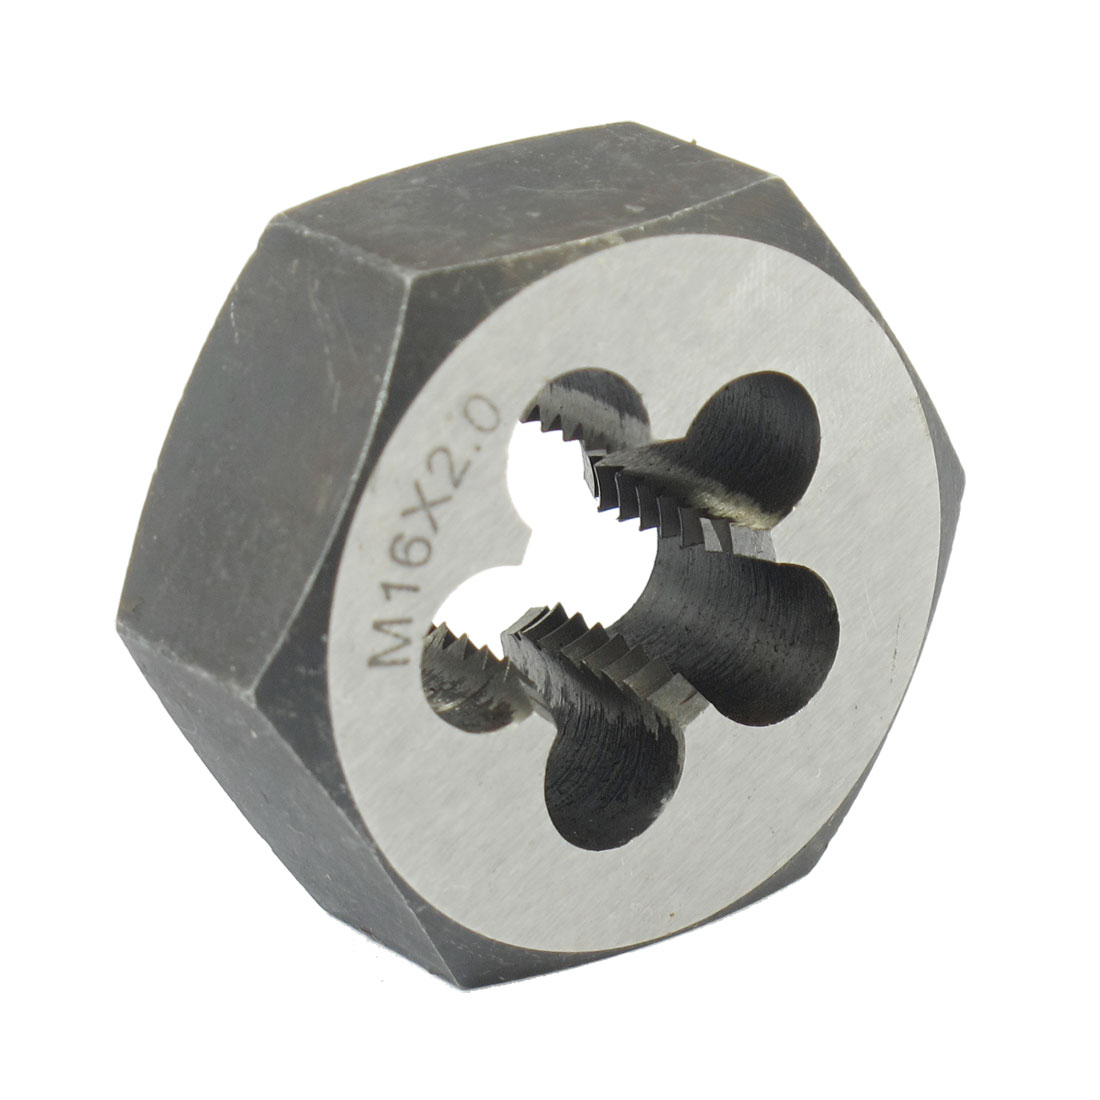 47mm Outside Dia 18mm Thickness M16 x 2 Hex Metric Thread Die Hand Tool